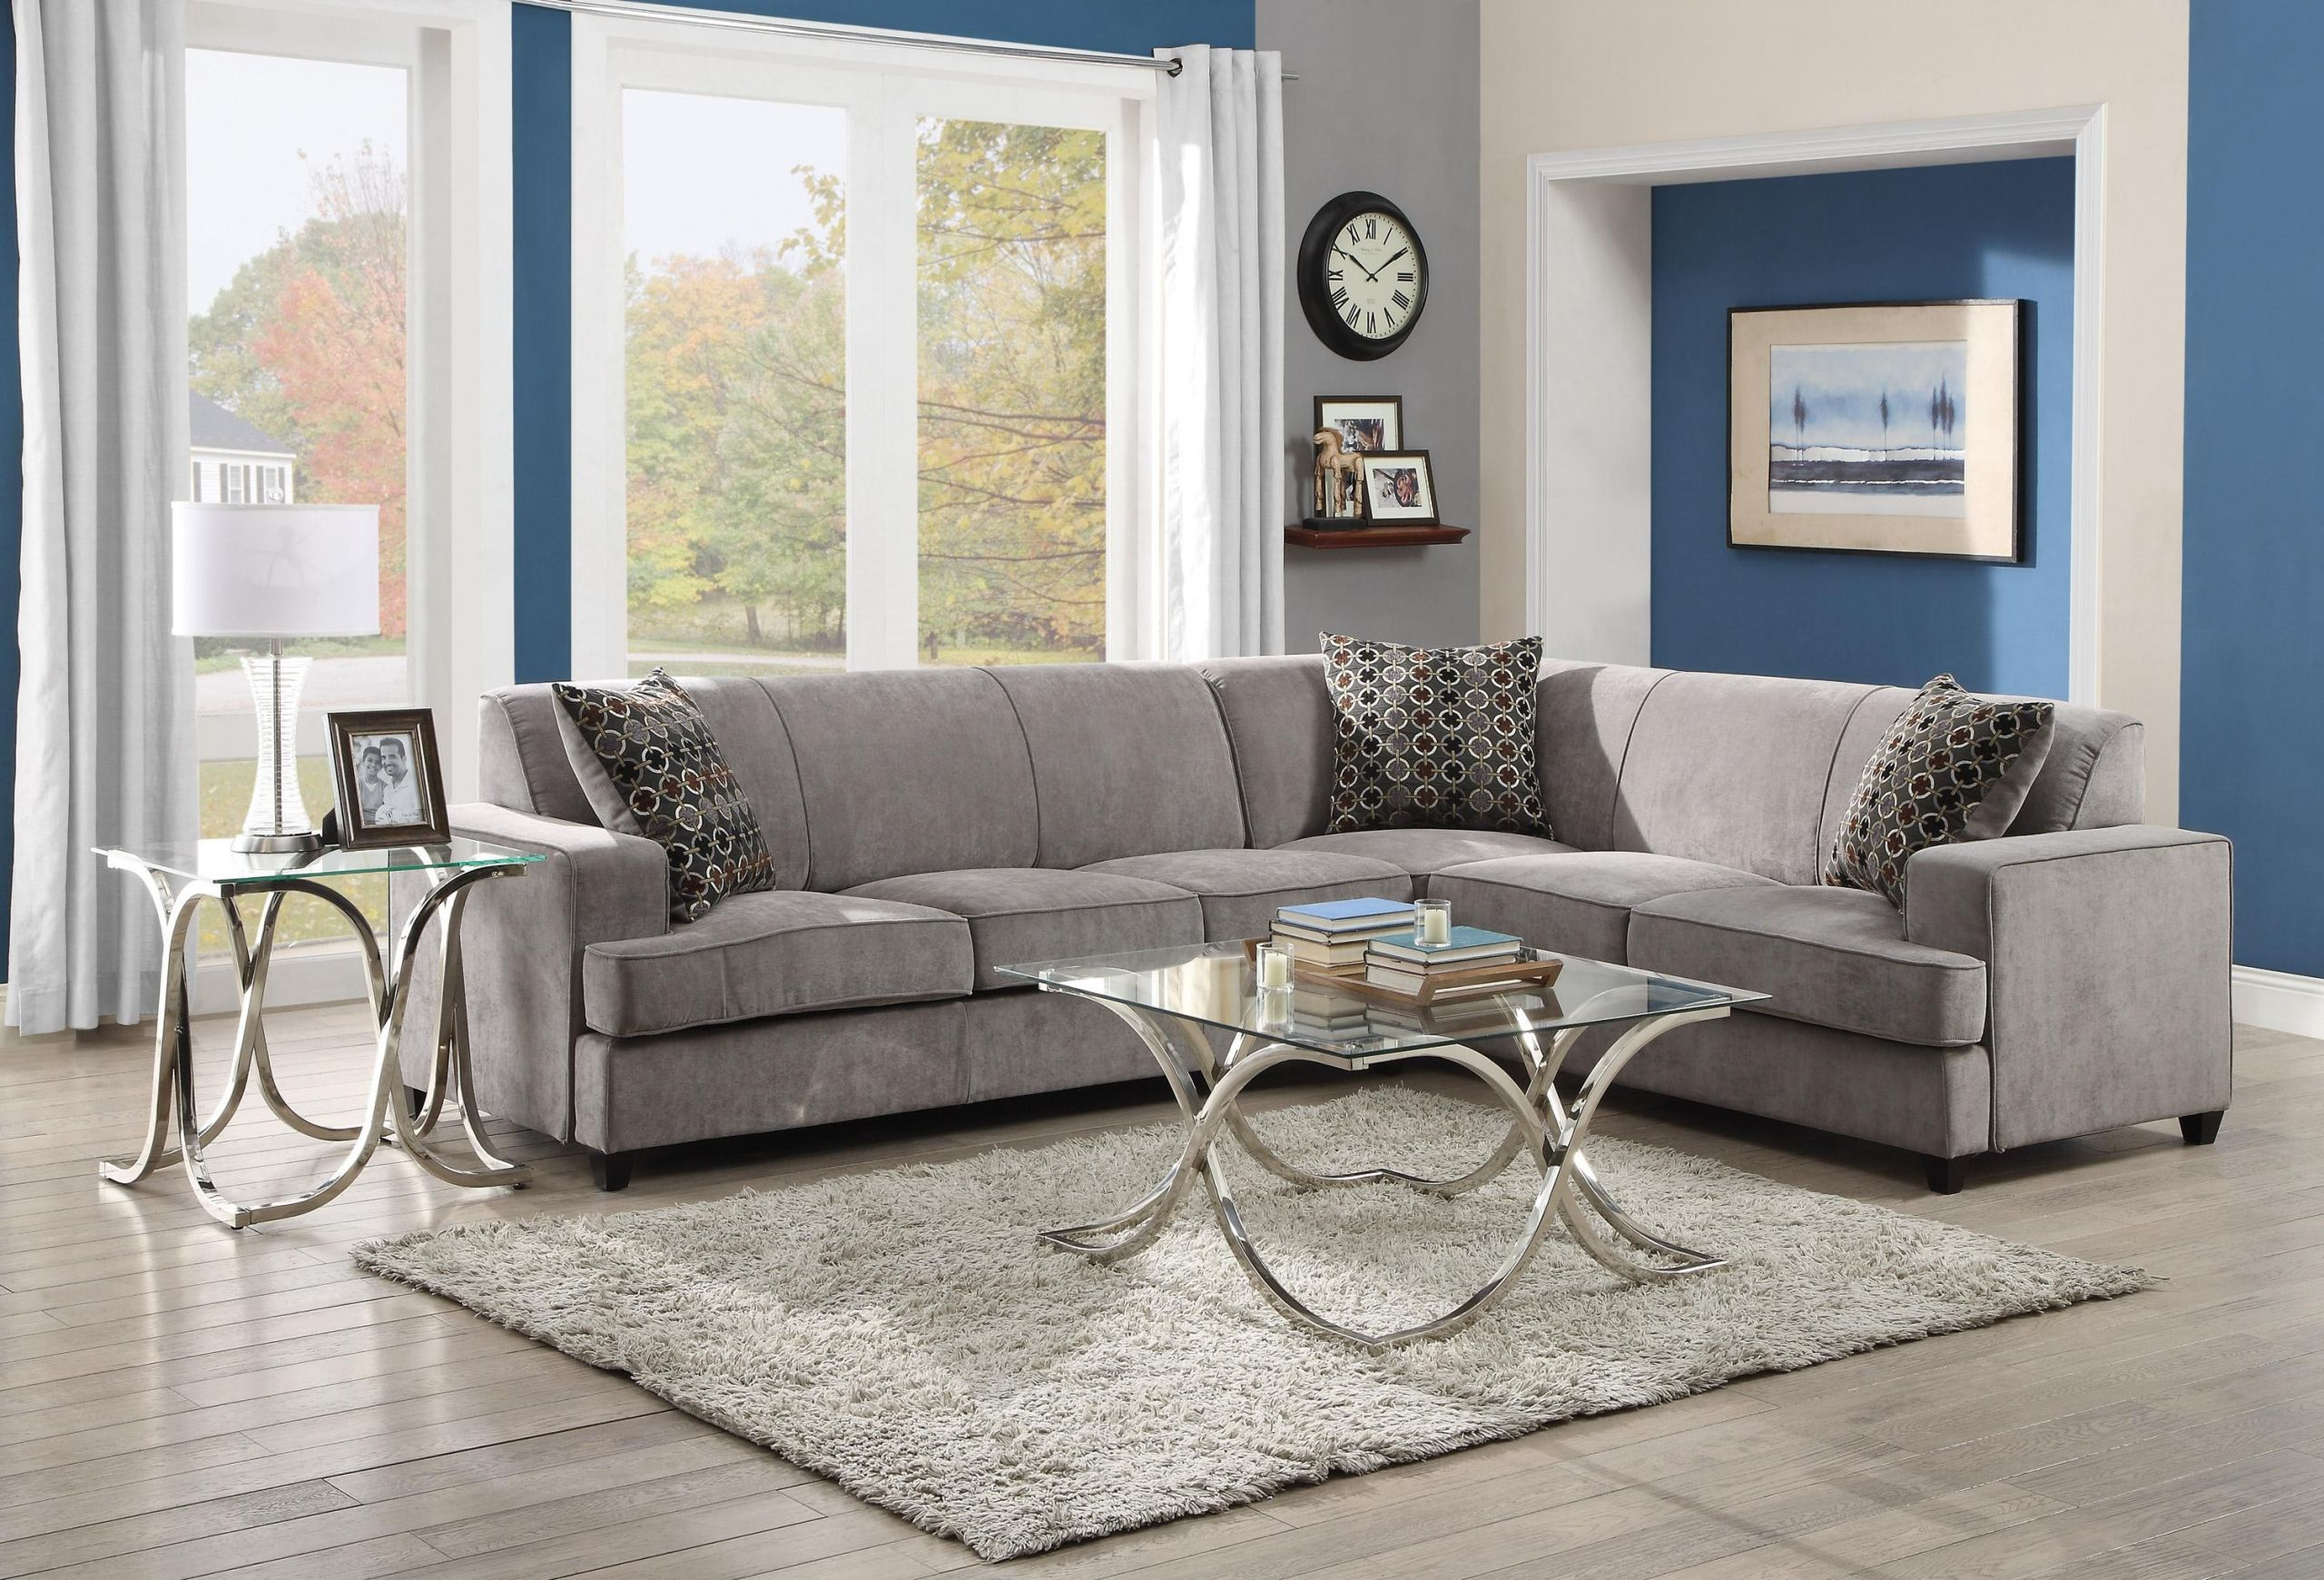 Living Room Glass Table  30 Glass Coffee Tables that Bring Transparency to Your